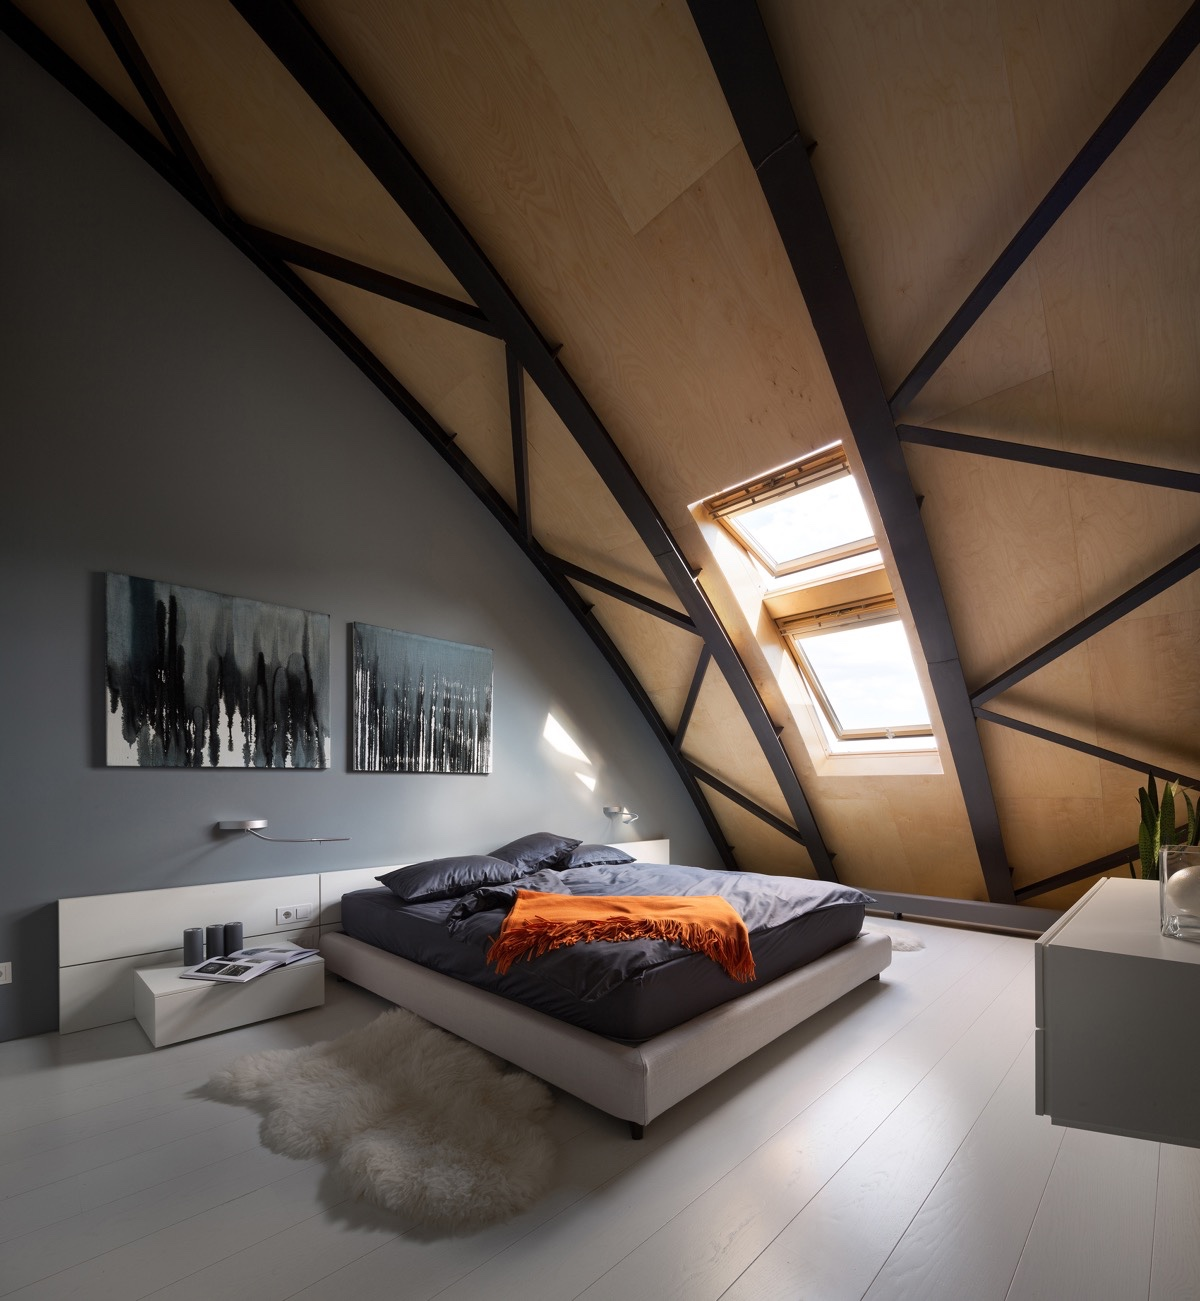 Dramatic Black And Gray Attic Bedroom - 25 amazing attic bedrooms that you would absolutely enjoy sleeping in